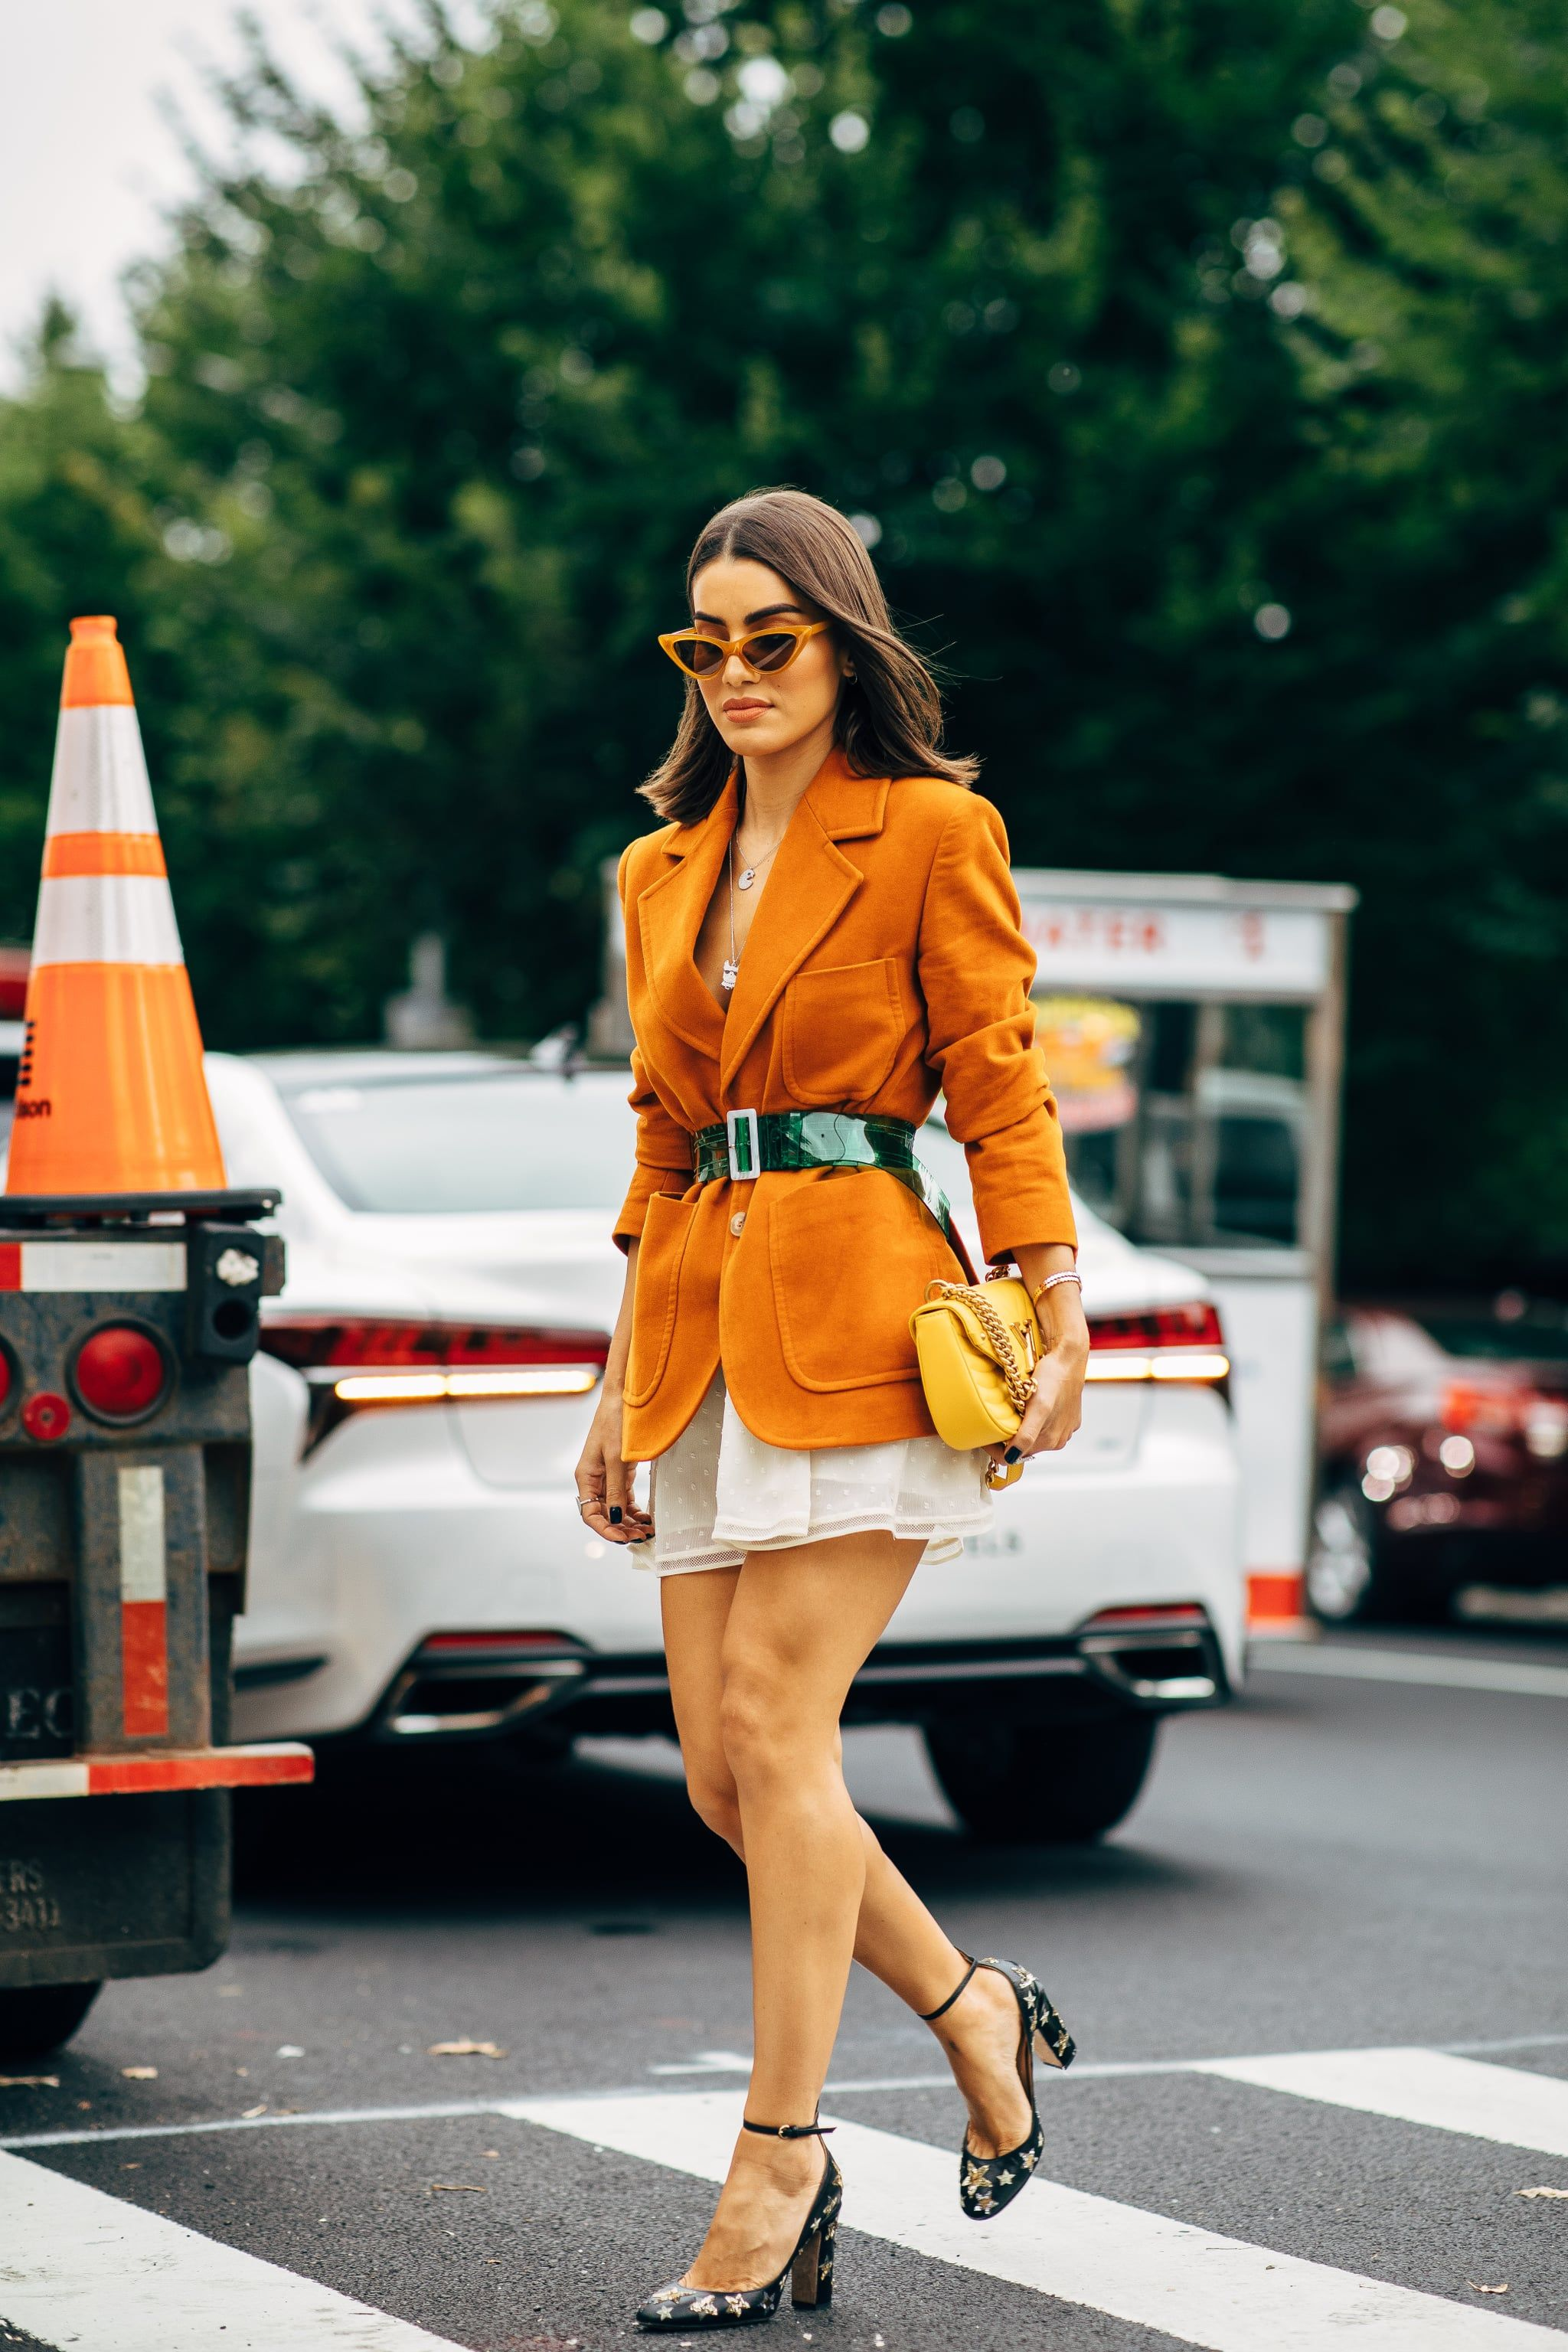 Spring nyfw brightest street style moments